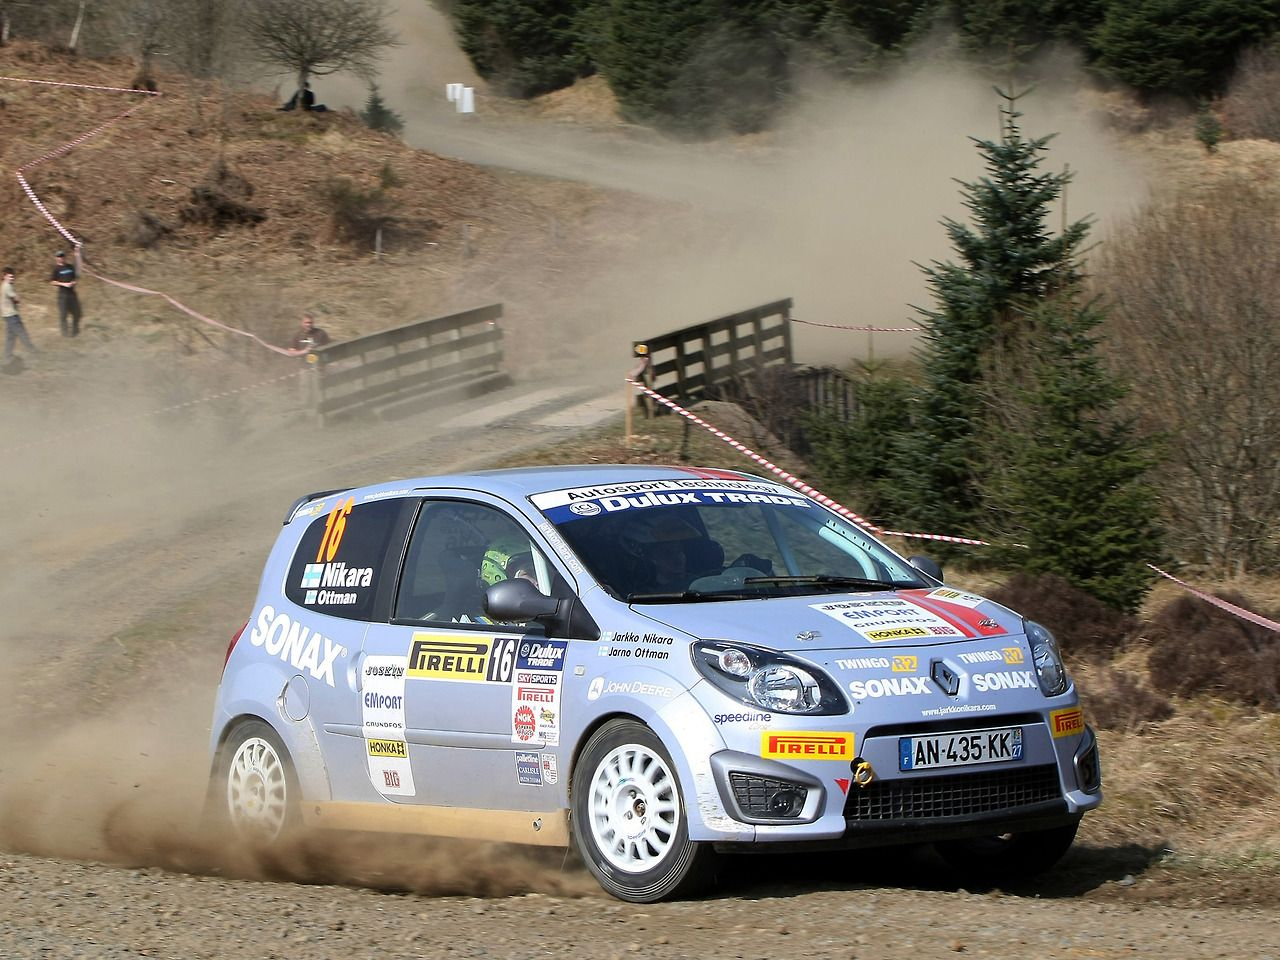 Renault Twingo rally car